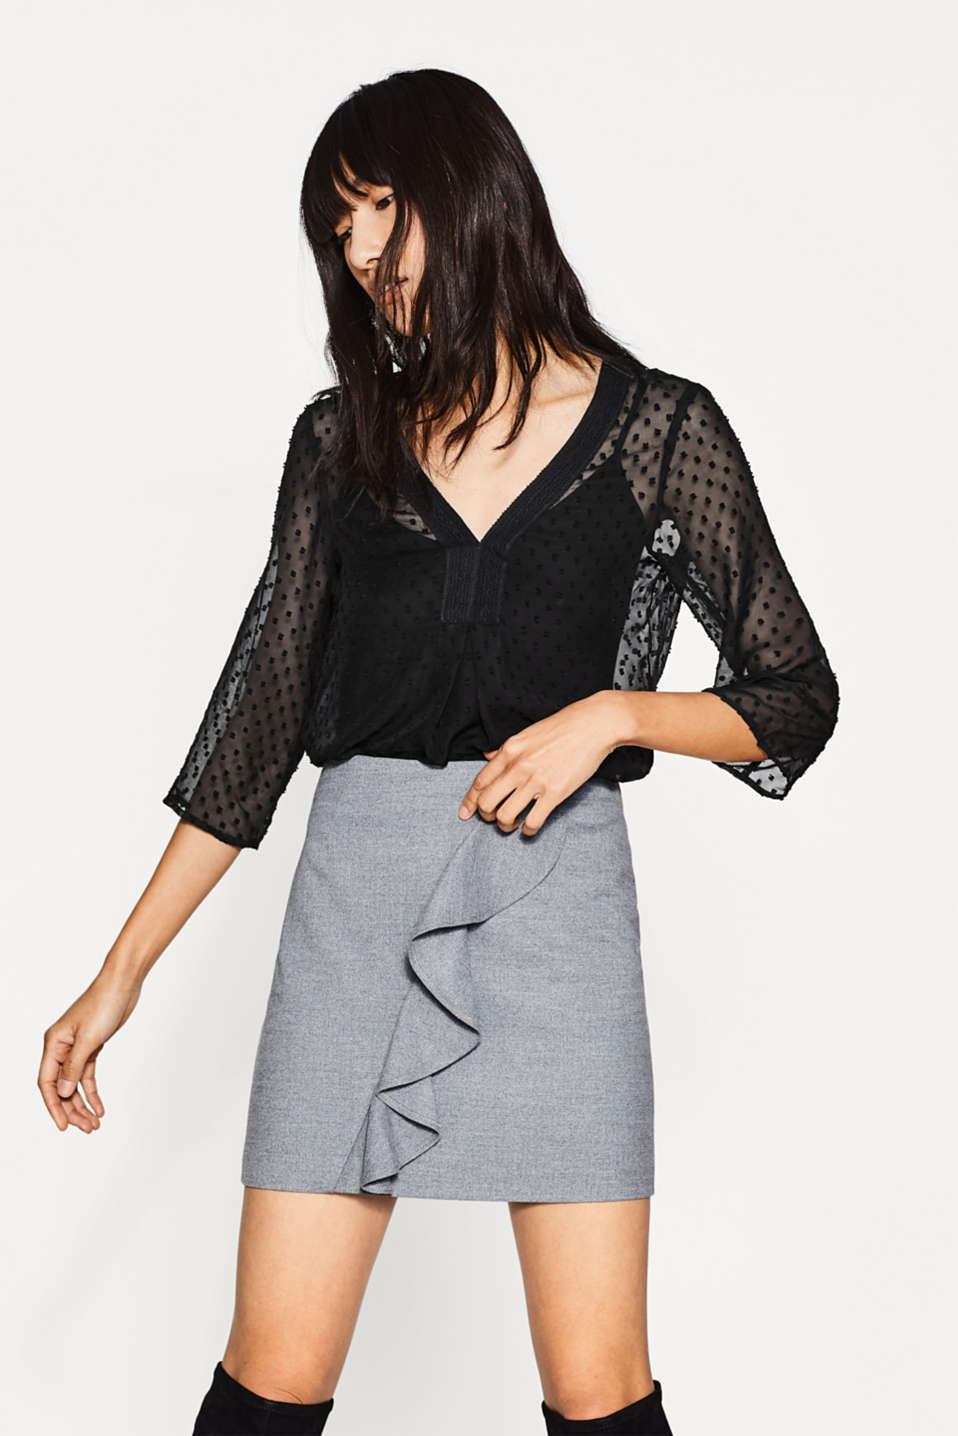 Esprit - Sheer 2-in-1 blouse with a strappy top